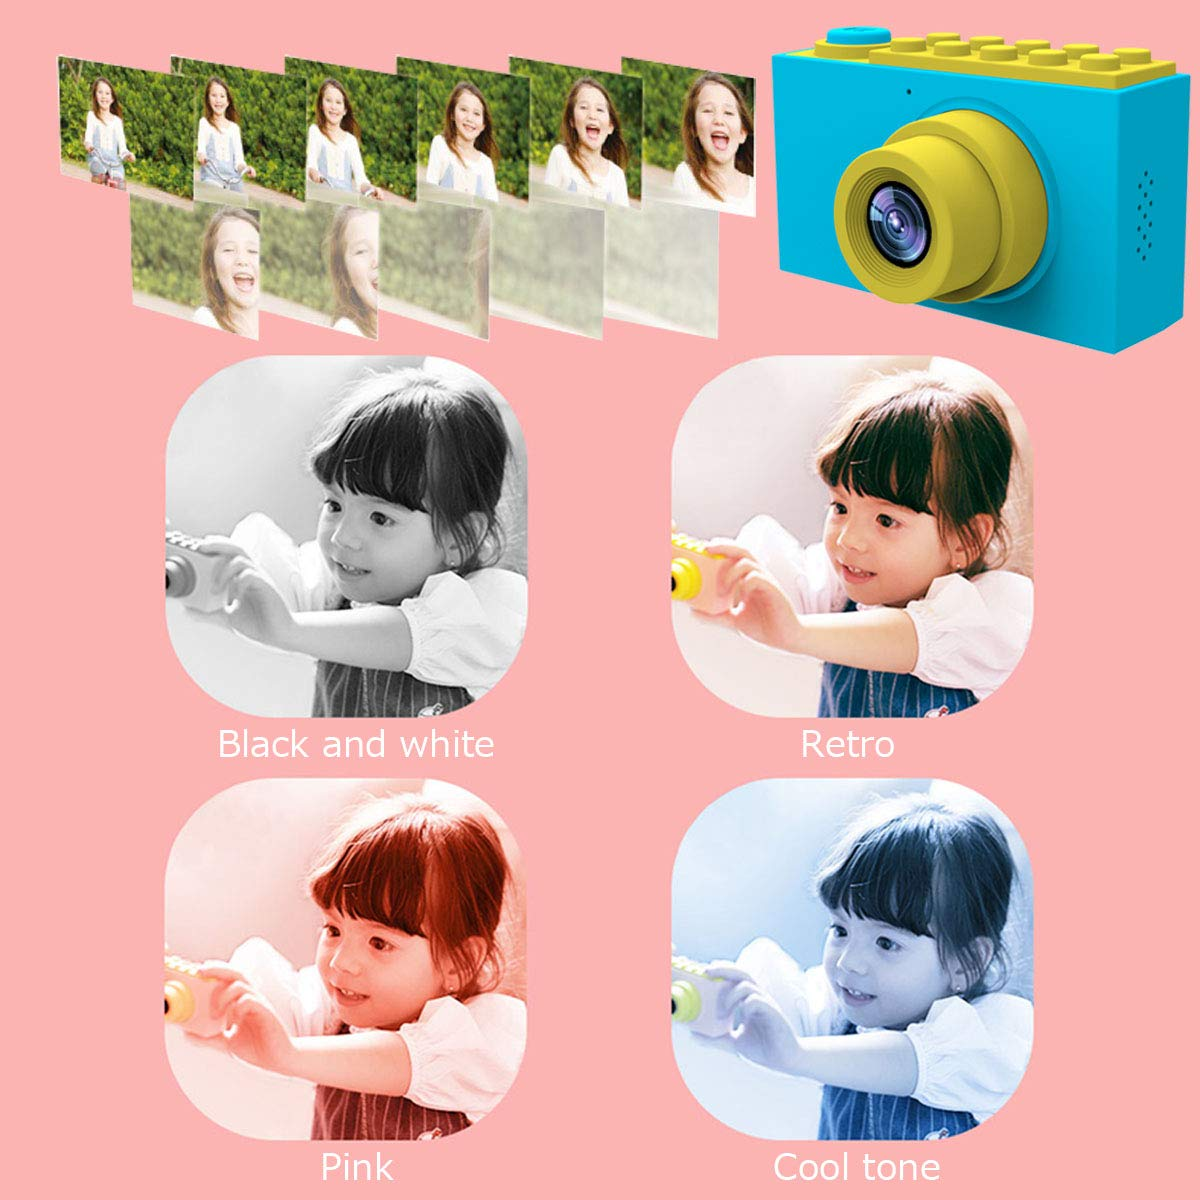 MAGENDARA Kids Digital Camera HD 1080P Children Camera 2.0 Inch Screen Toy Camera Boys Girls Birthday, Blue by MAGENDARA (Image #4)